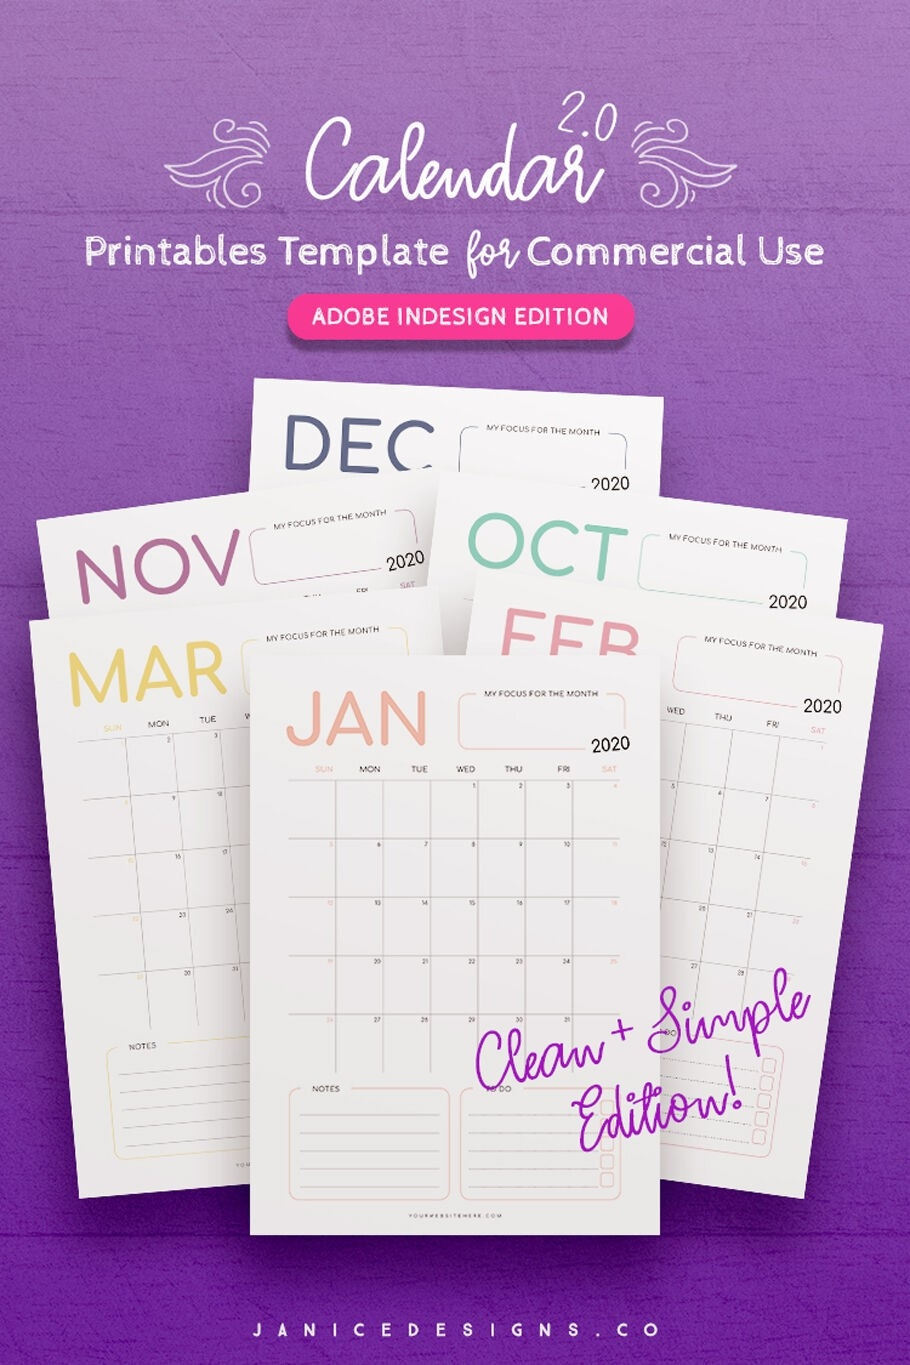 2020 Calendar Indesign Template For Commercial Use By Janice-2020 Calendar Template Indesign